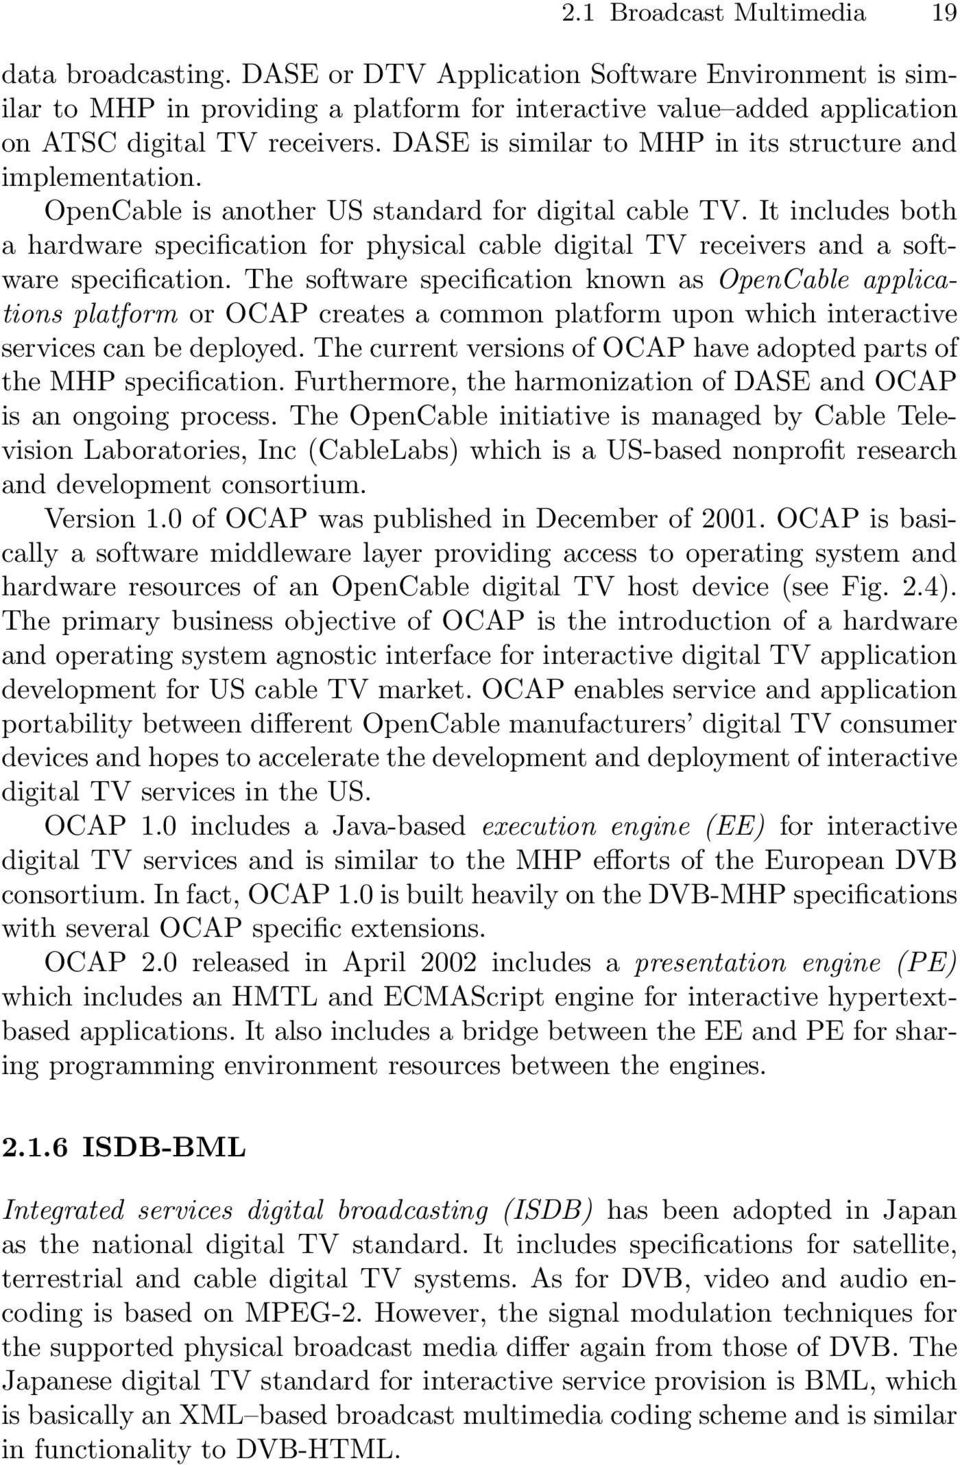 DASE is similar to MHP in its structure and implementation. OpenCable is another US standard for digital cable TV.